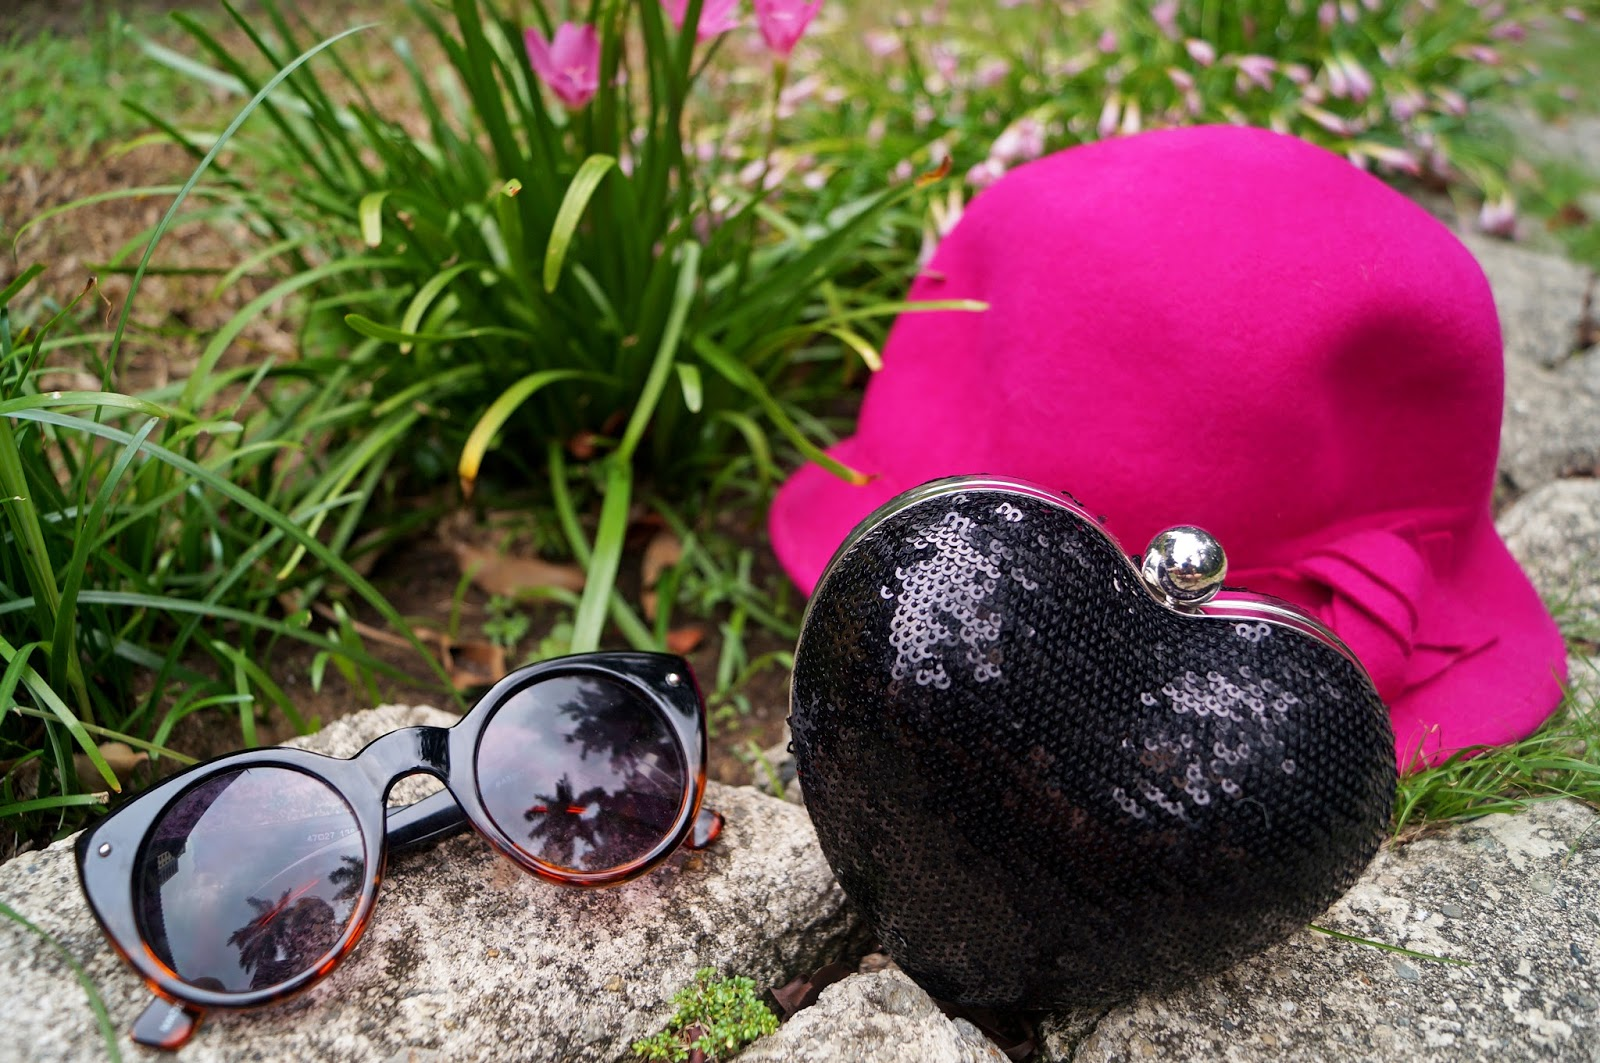 Heart Clutch, Forever 21 Clutch, Forever 21 Sunglasses